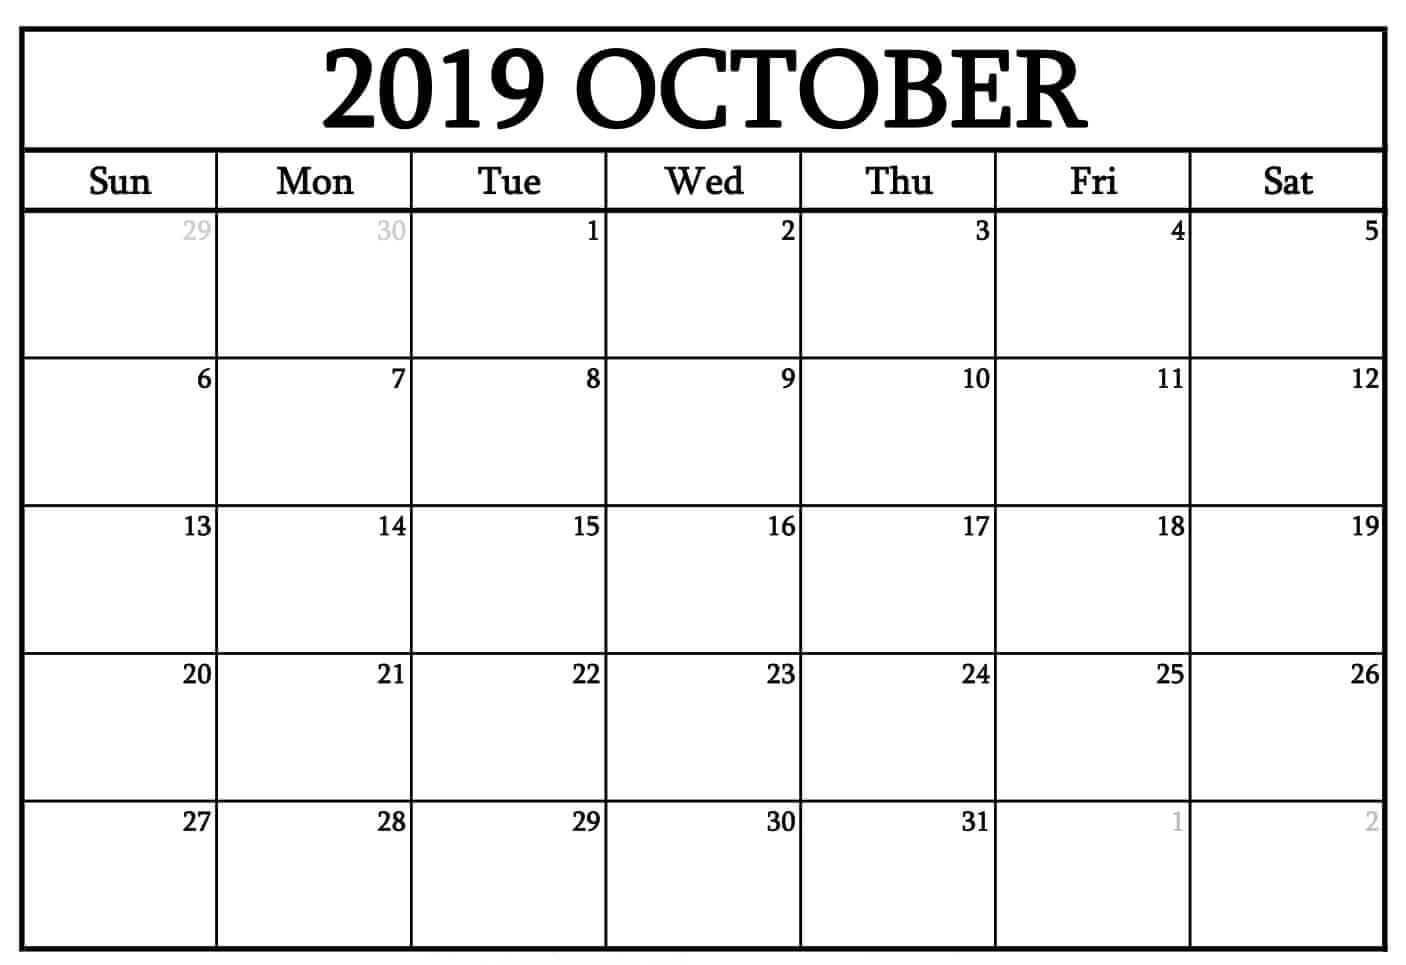 October 2019 Calendar With Holidays Blank